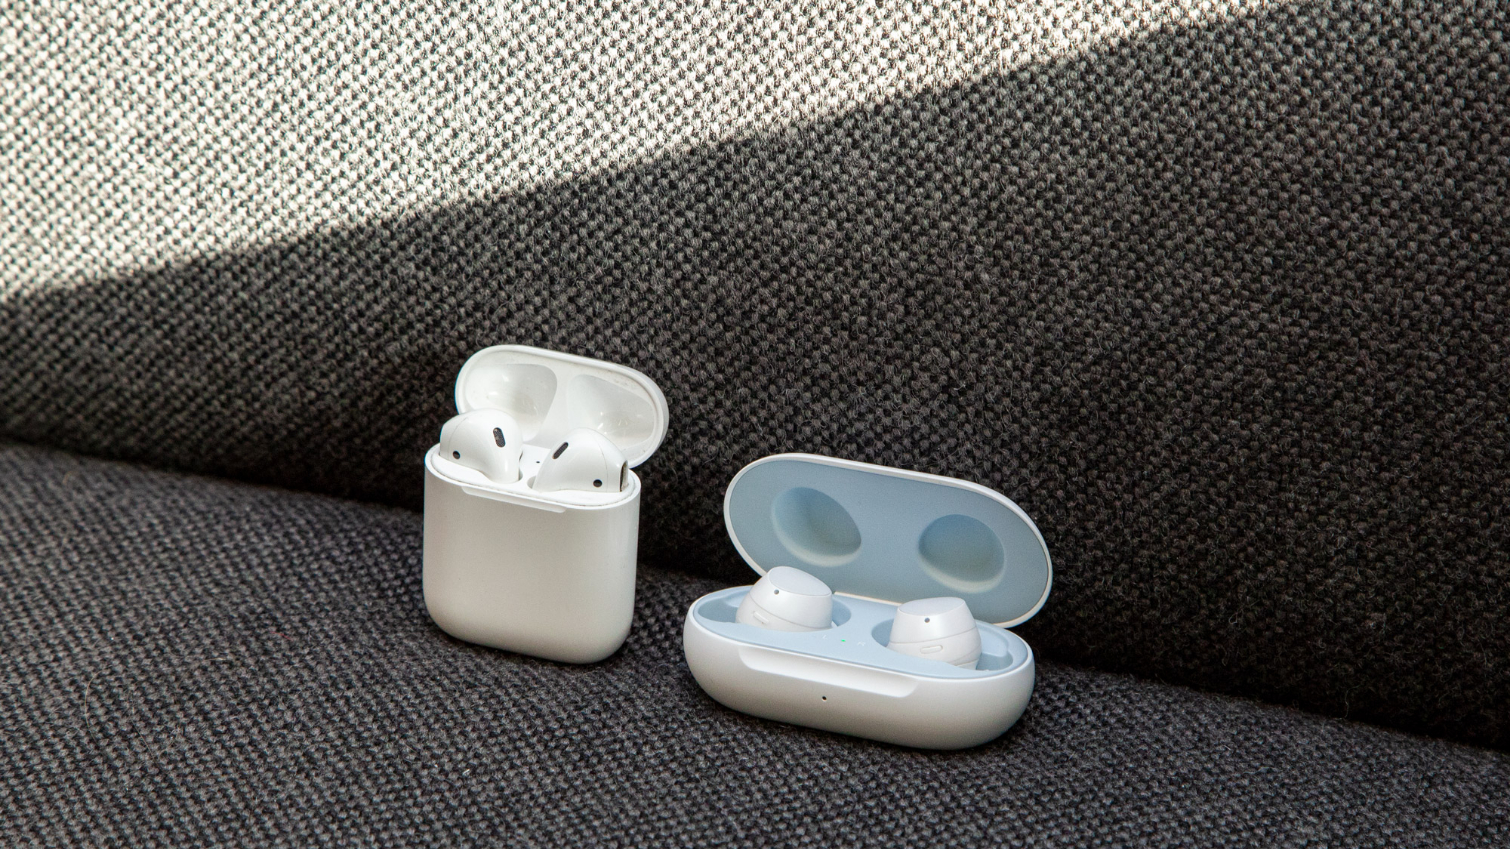 Apple AirPods vs  Galaxy Buds: Why Samsung Wins | Tom's Guide